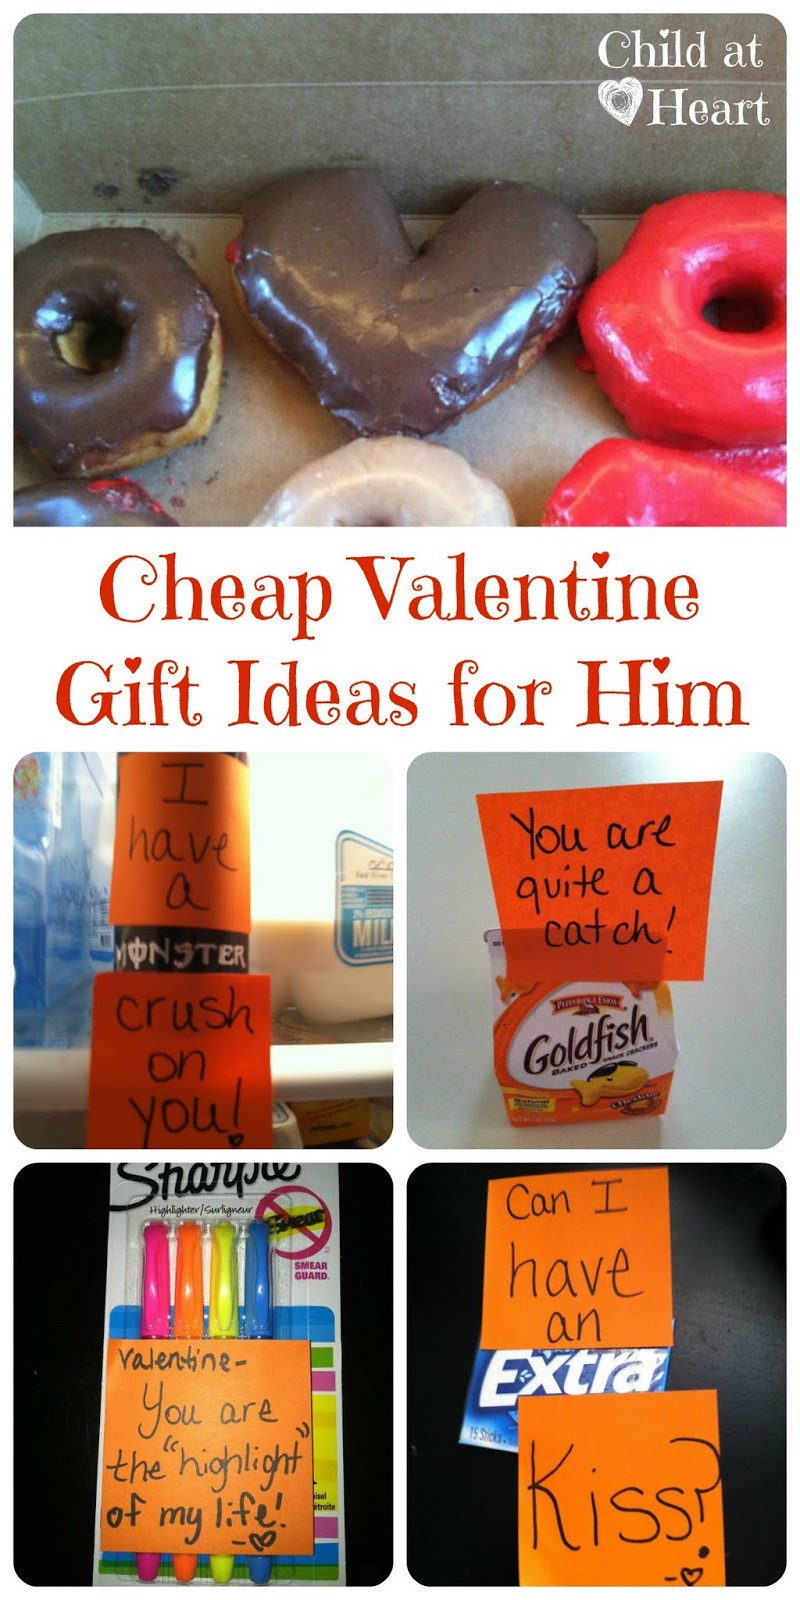 Best ideas about Small Valentine Gift Ideas . Save or Pin Cheap Valentine Gift Ideas for Him Child at Heart Blog Now.